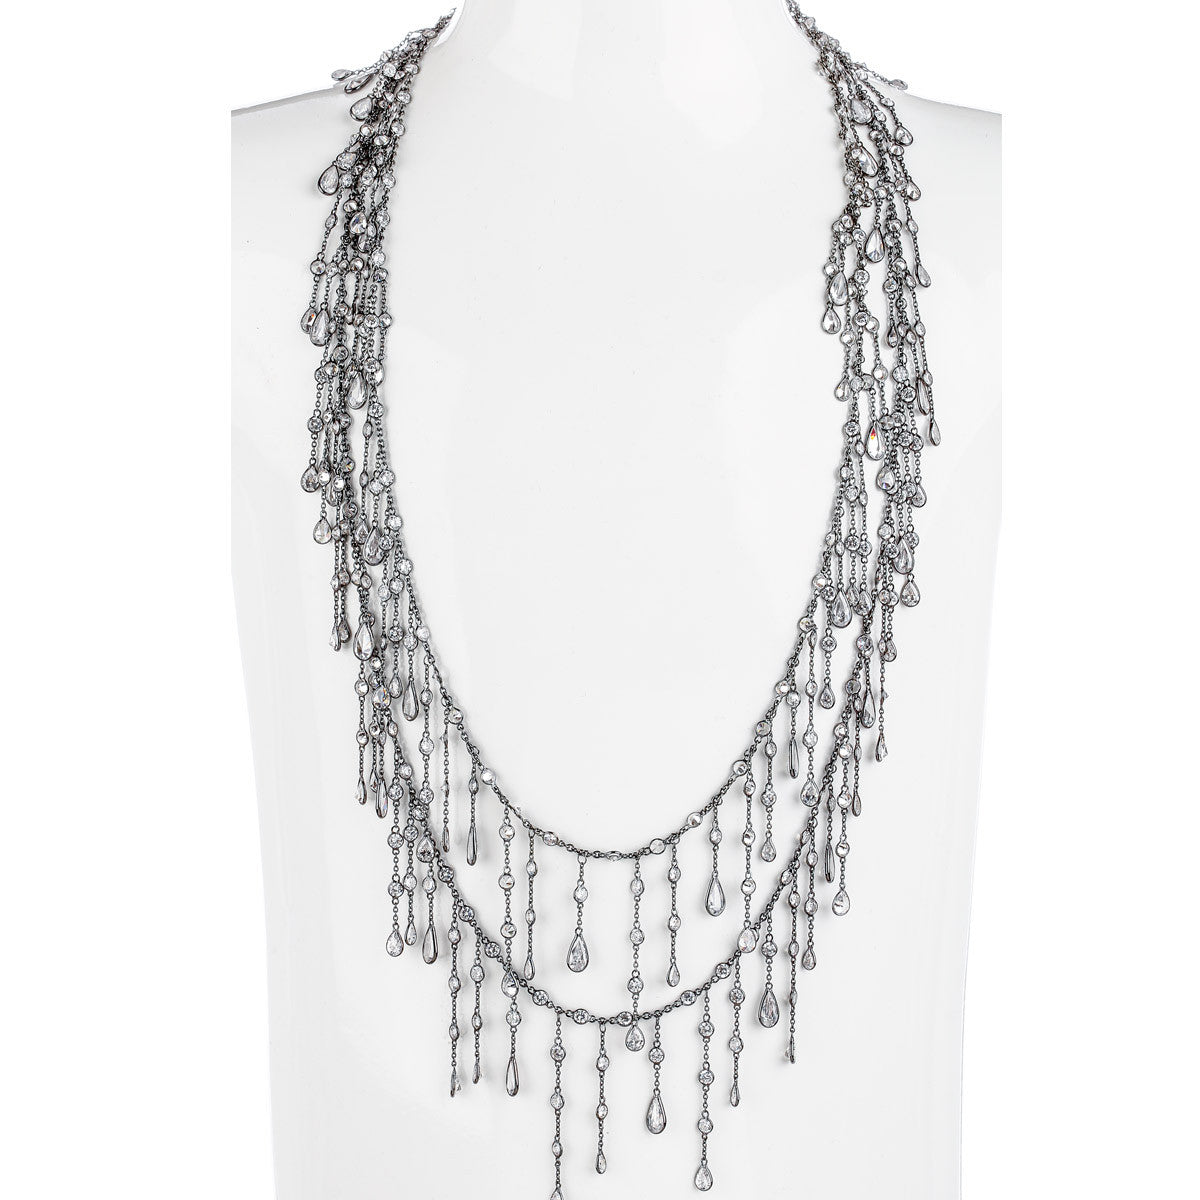 Red Carpet Waterfall Teardrop Necklace - The Firestone Collection - Fashion Jewelry & Accessories